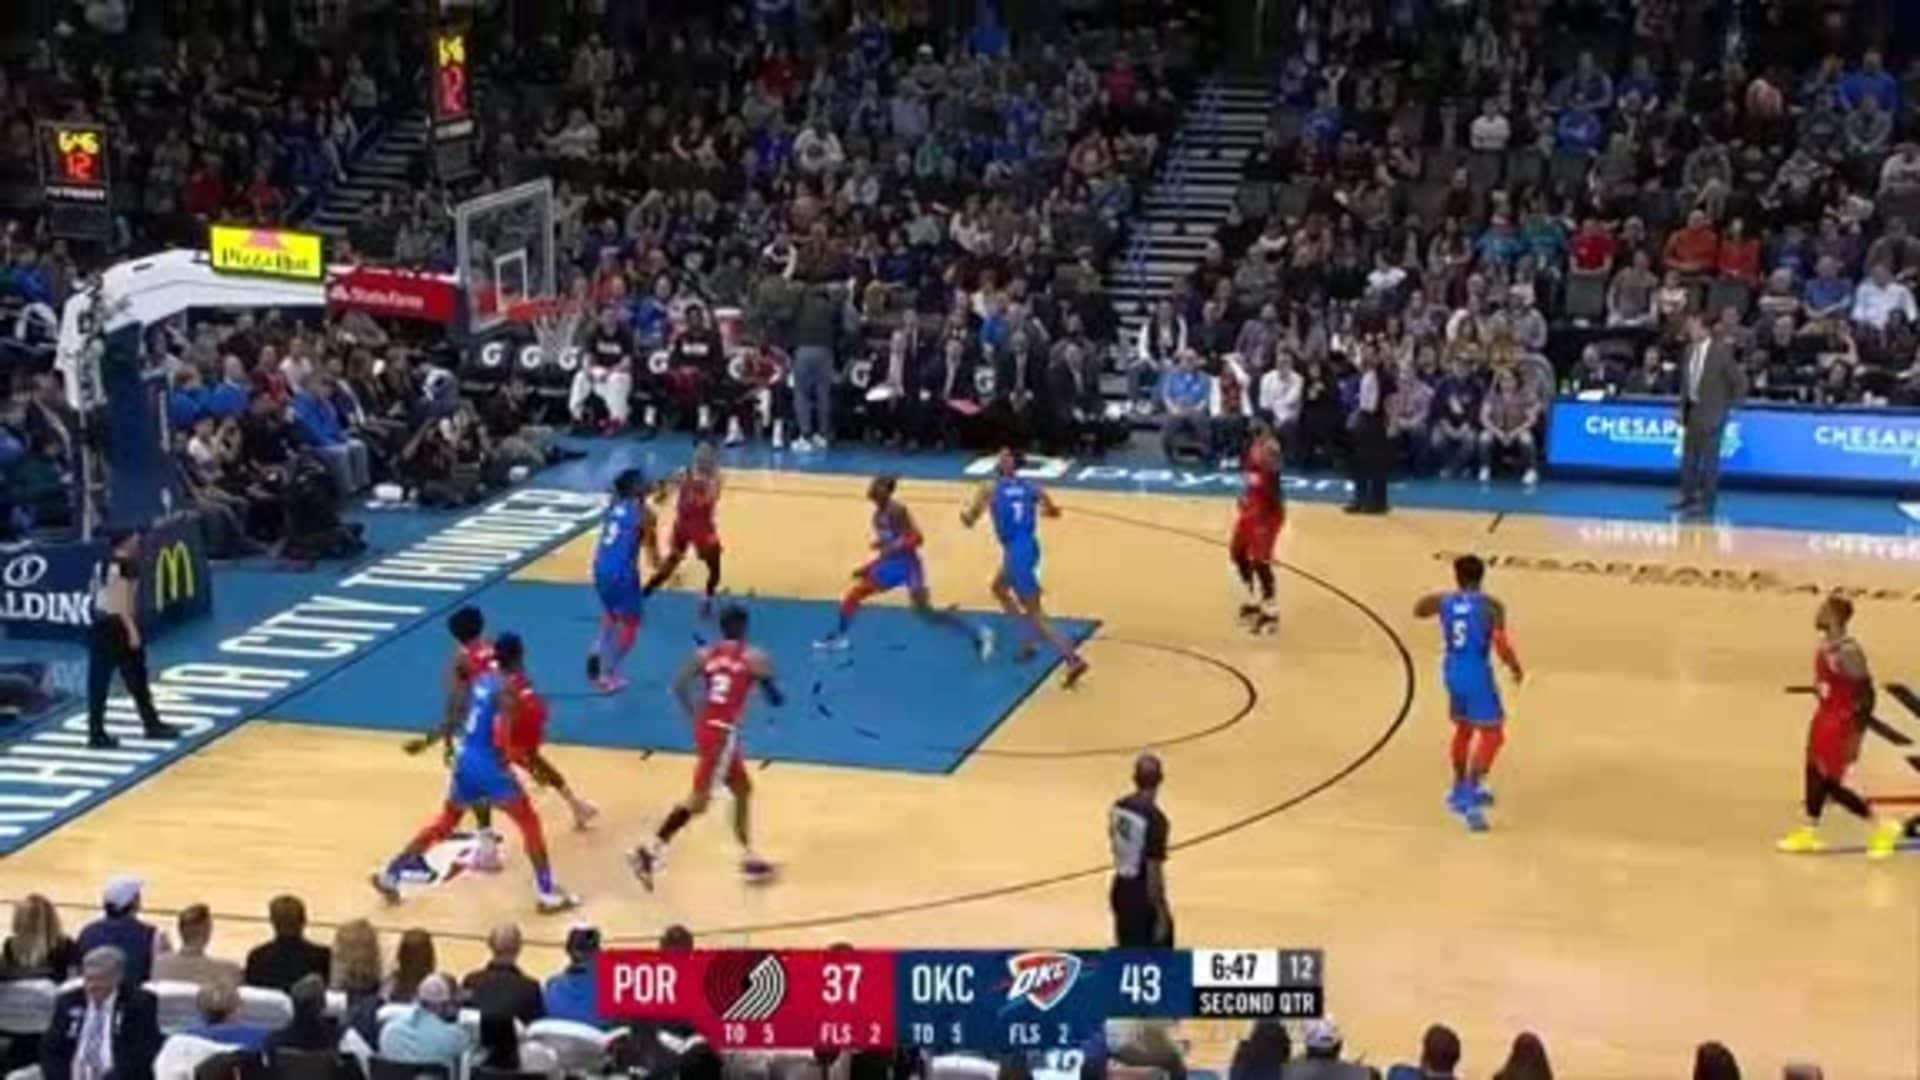 Anfernee Simons gets up for the dunk in the first half vs. OKC